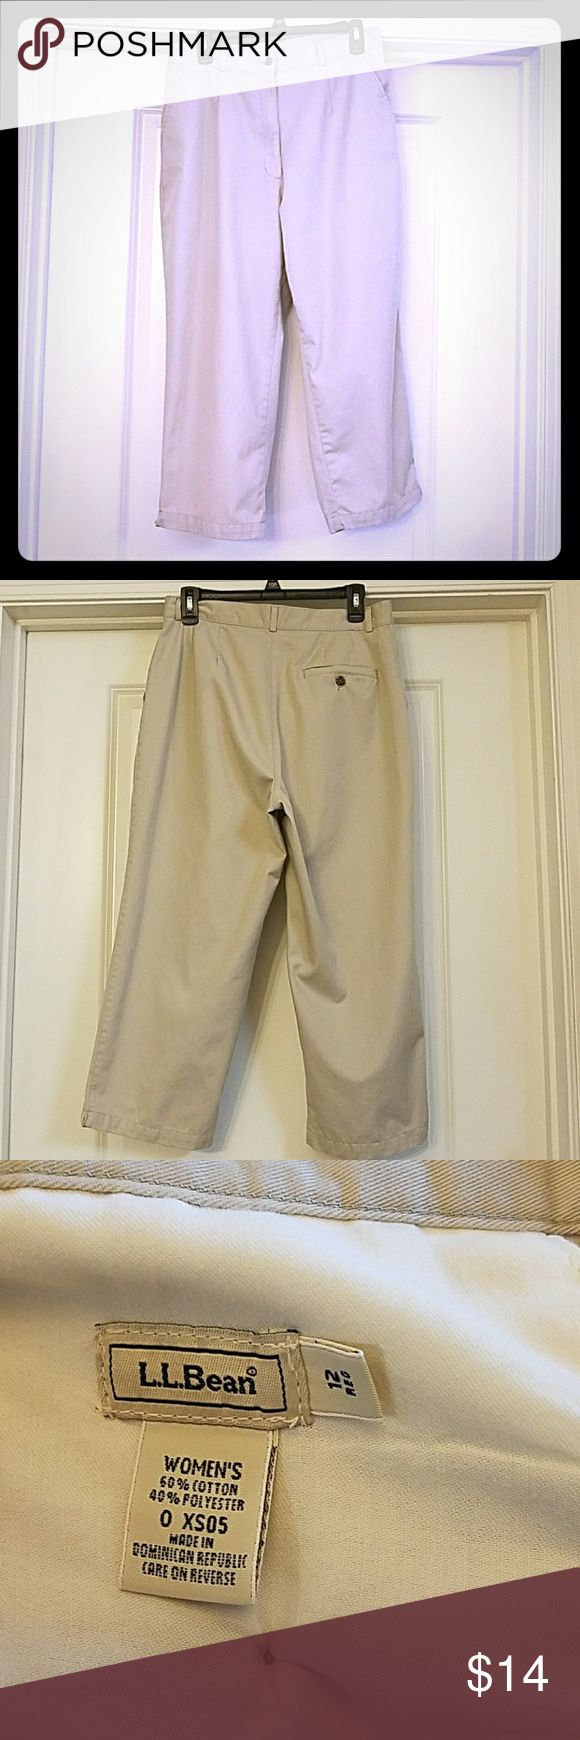 L.L Bean Khaki Capri Pants L.L Bean Khaki Capri Pants features two front pockets and one Pocket in the back. Laying flat it measures 16 inches across the waist. The length of the Capri Pants is a 23 inches L.L. Bean Pants Capris